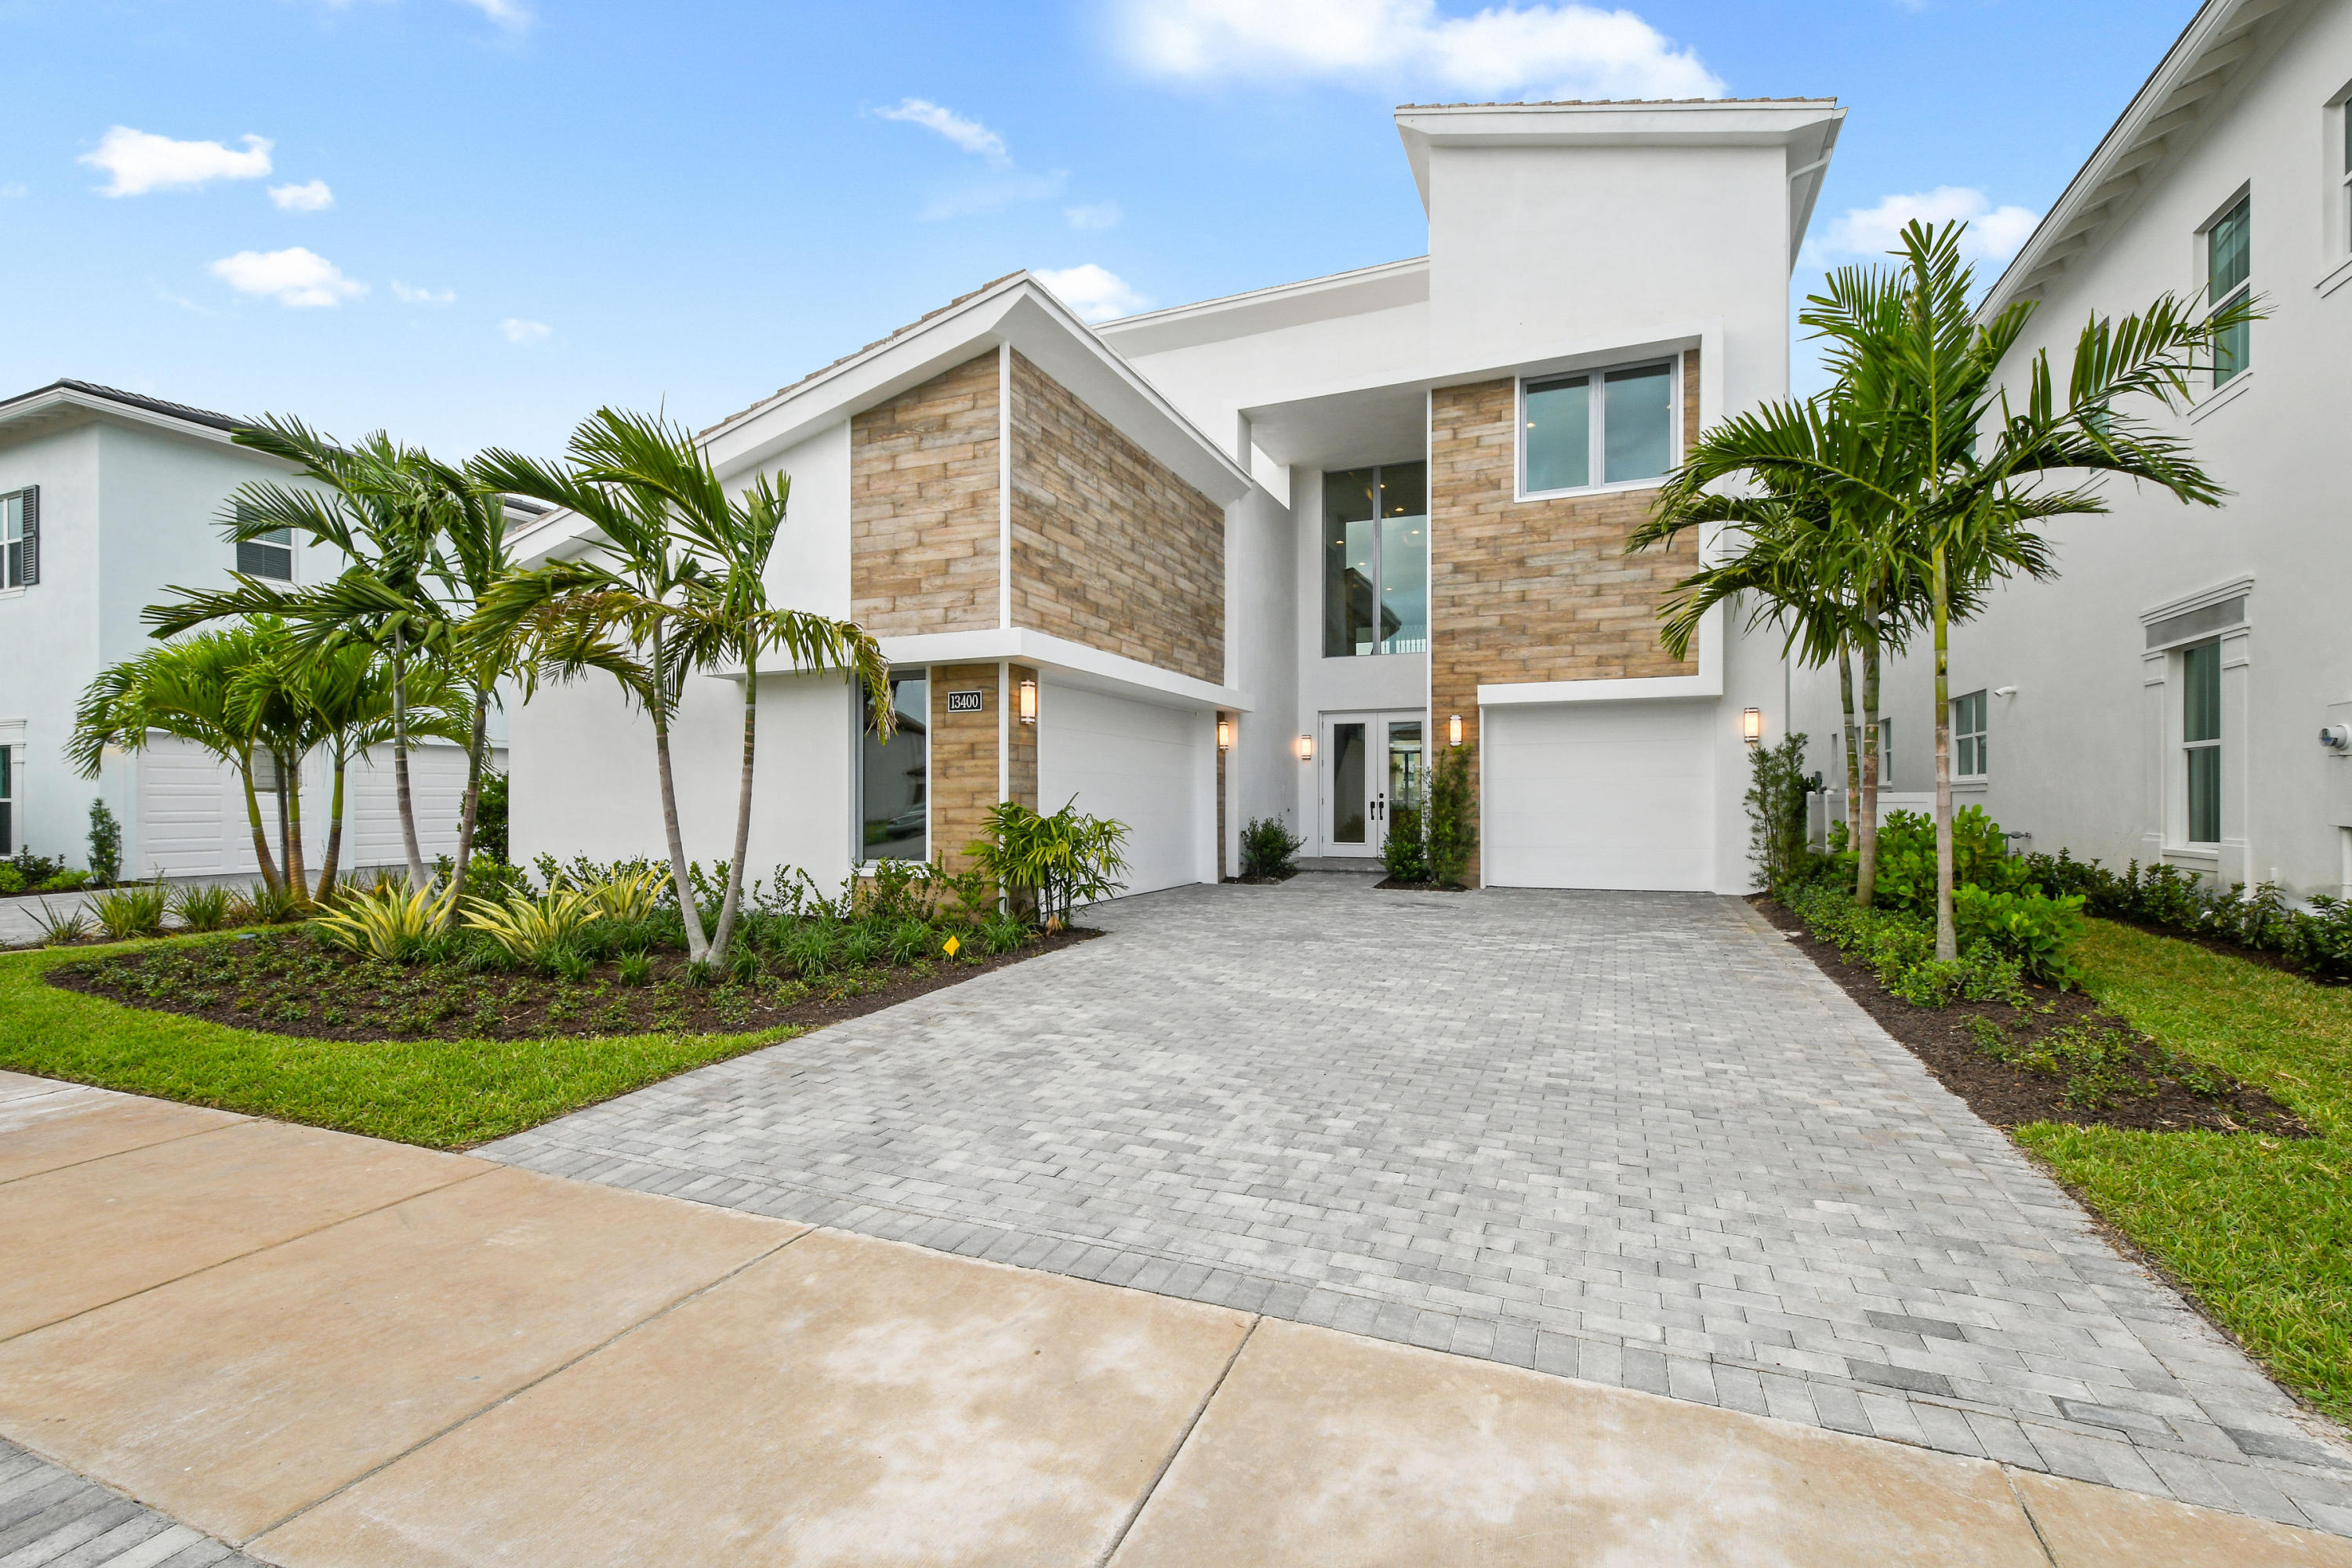 Home for sale in Alton Palm Beach Gardens Florida